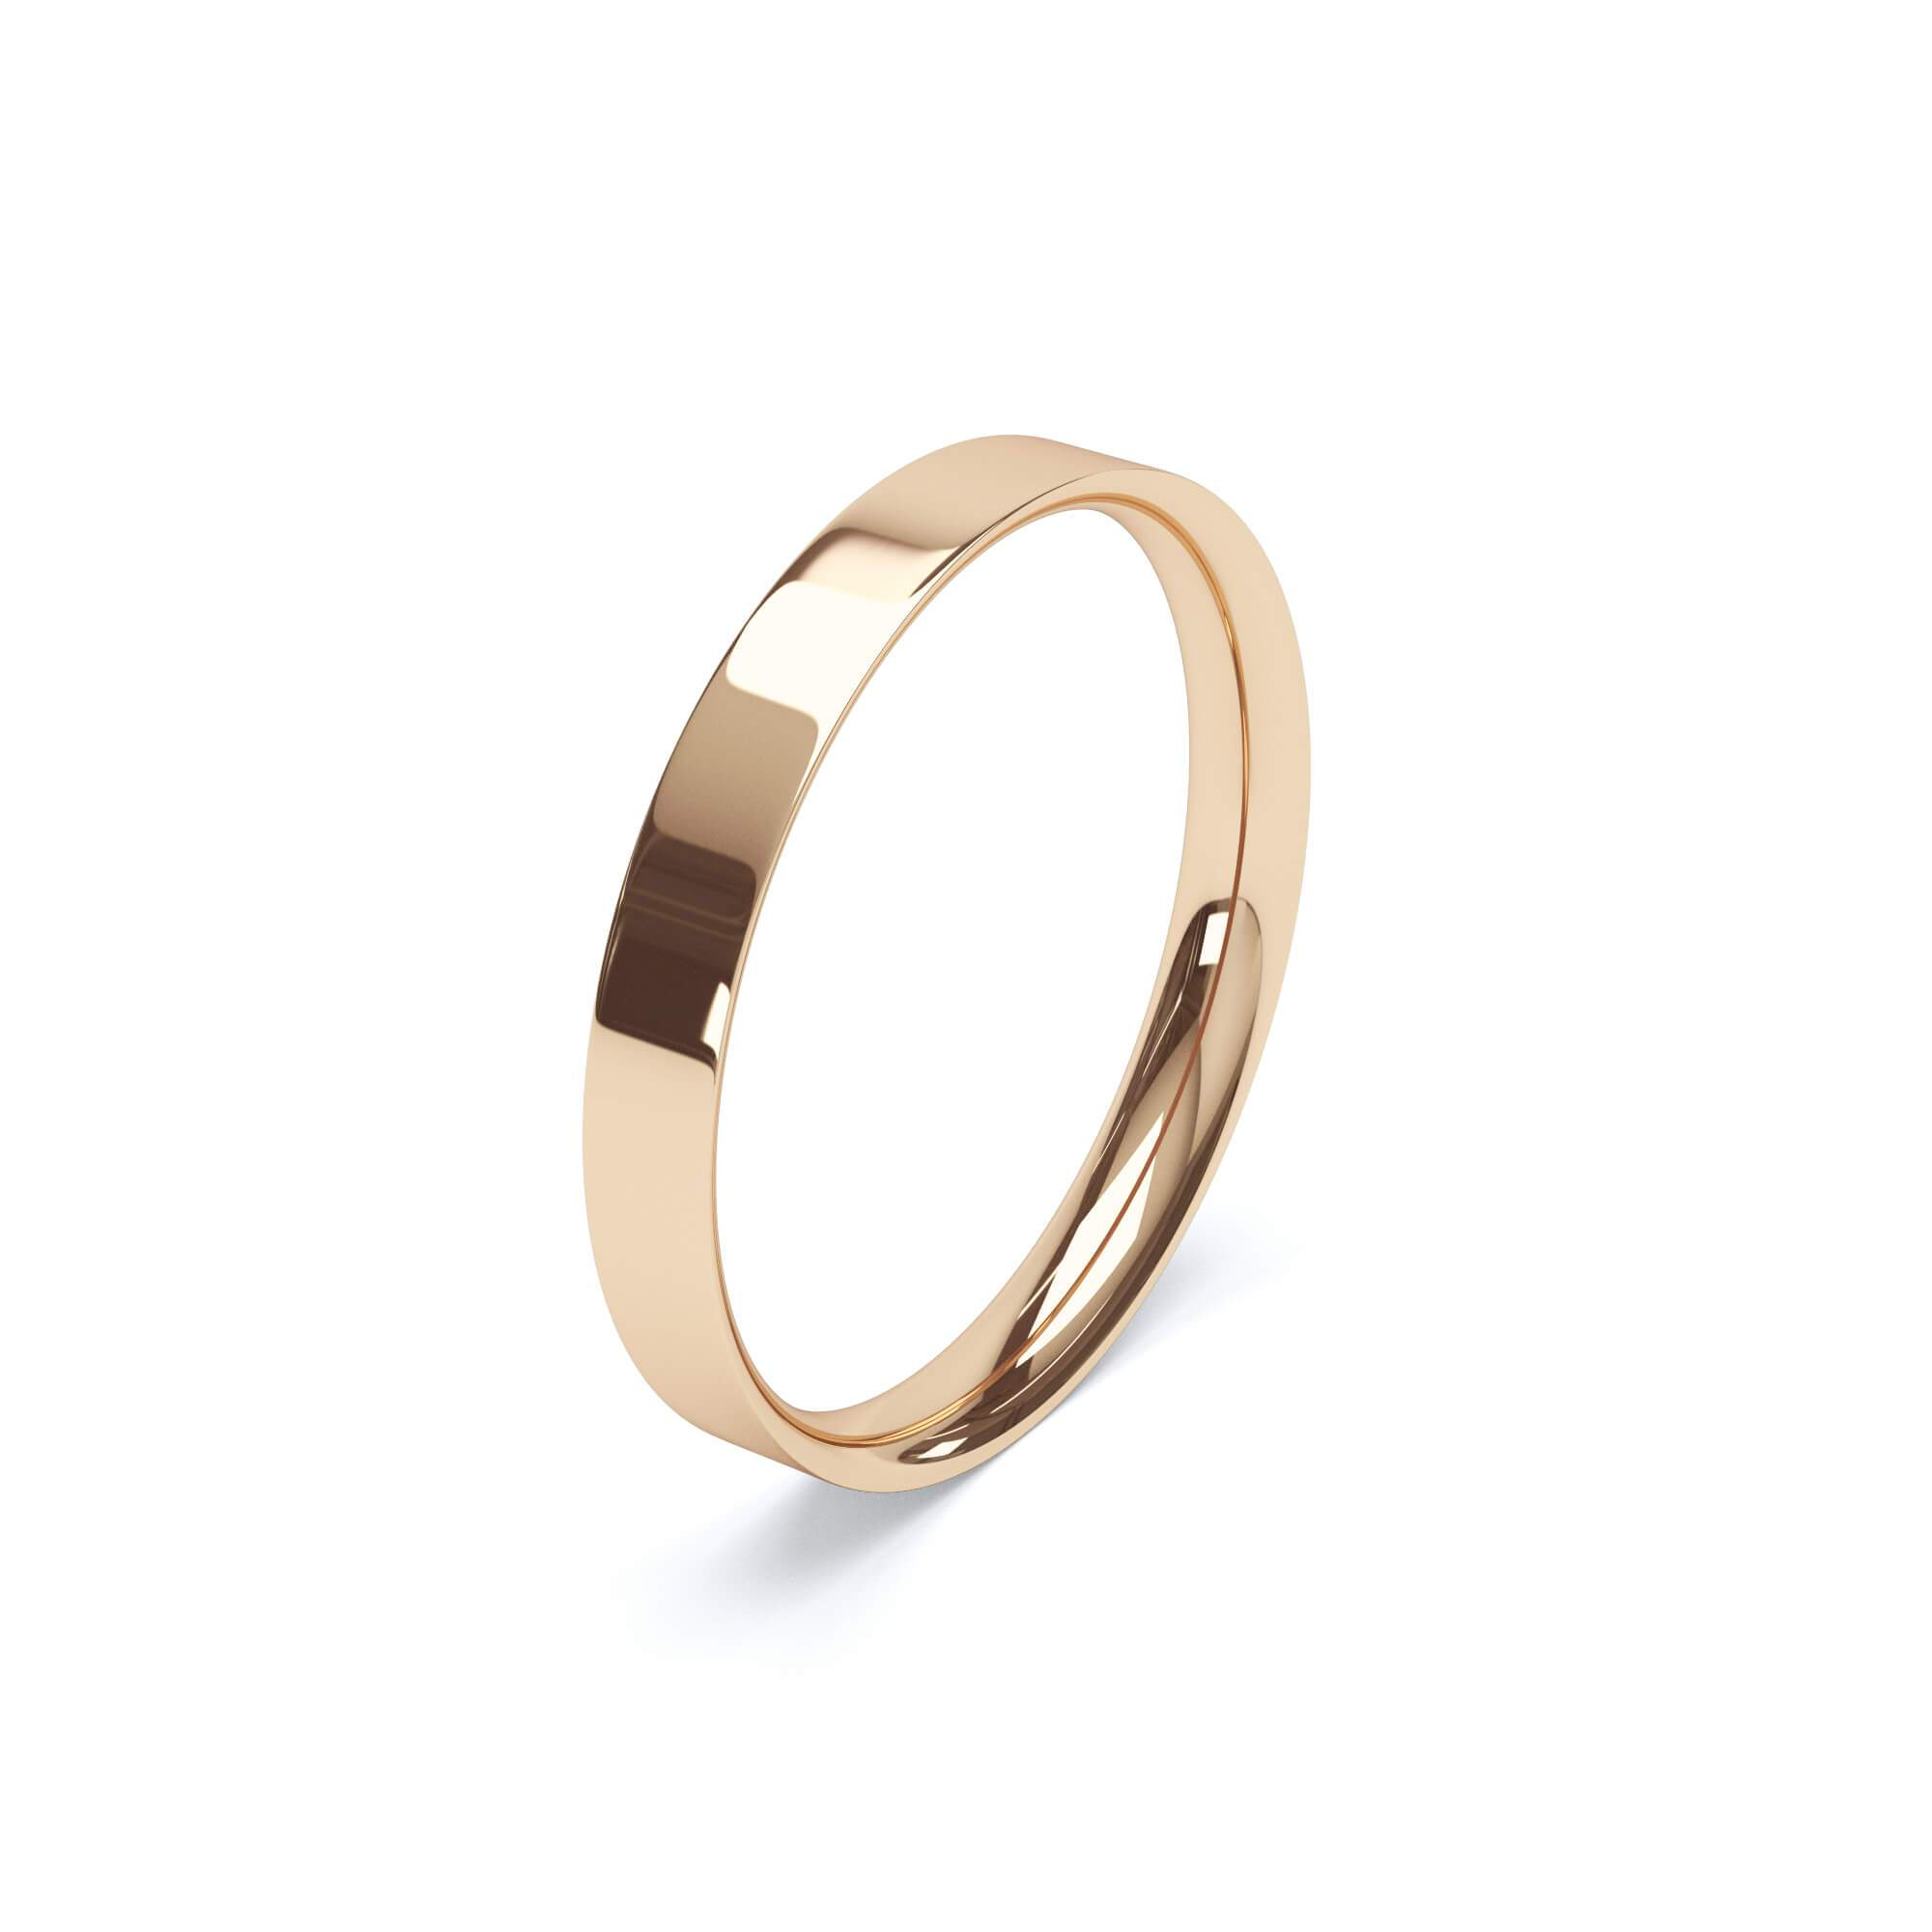 Lily Arkwright Wedding Bands Women's Plain Wedding Band Flat Court Profile 18k Rose Gold